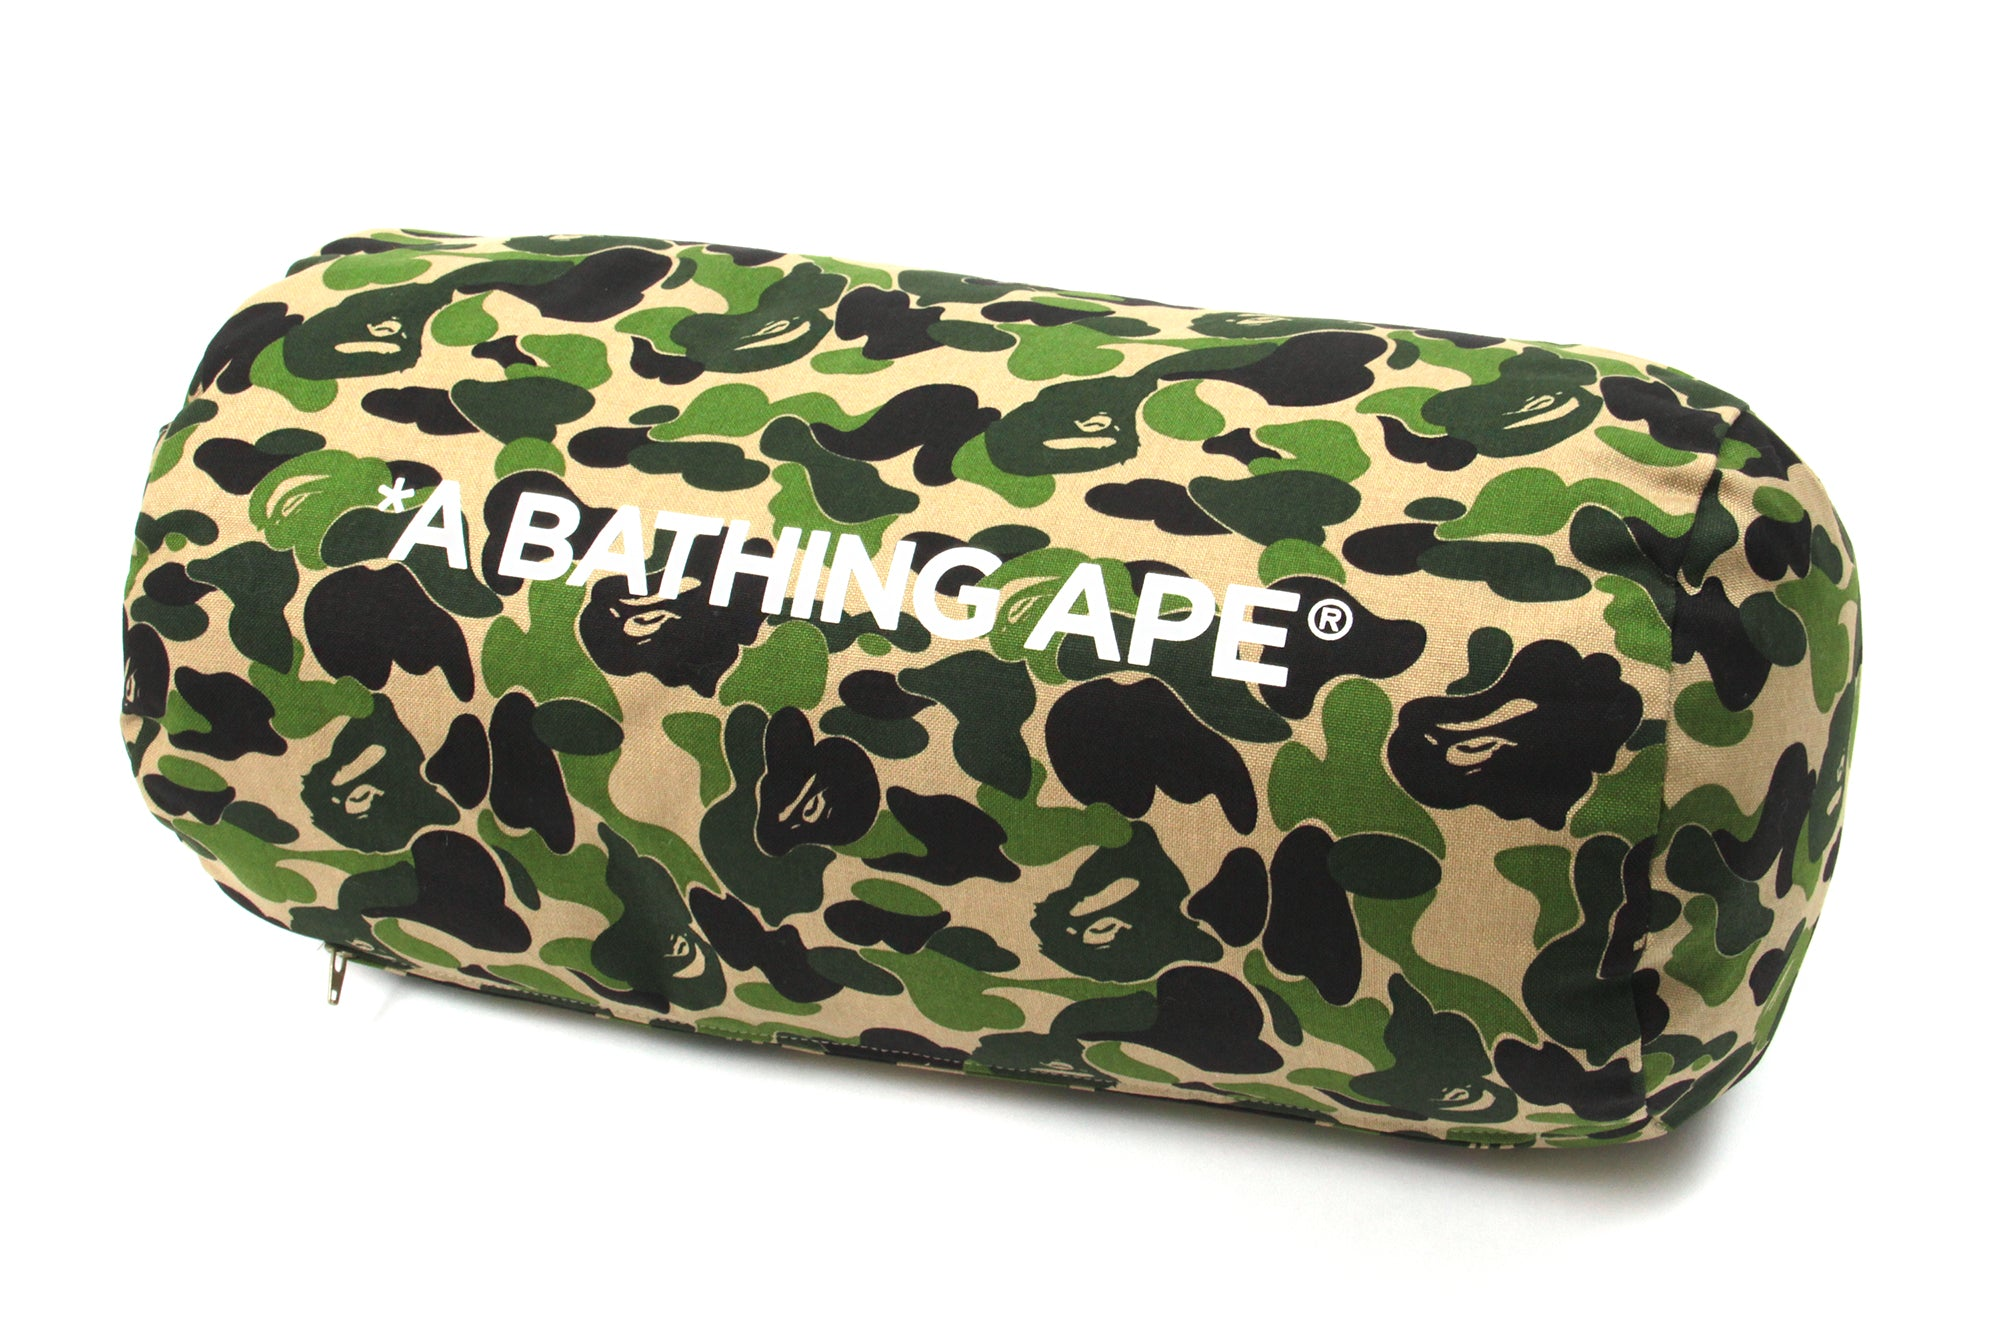 A Bathing Ape - CNCPTS